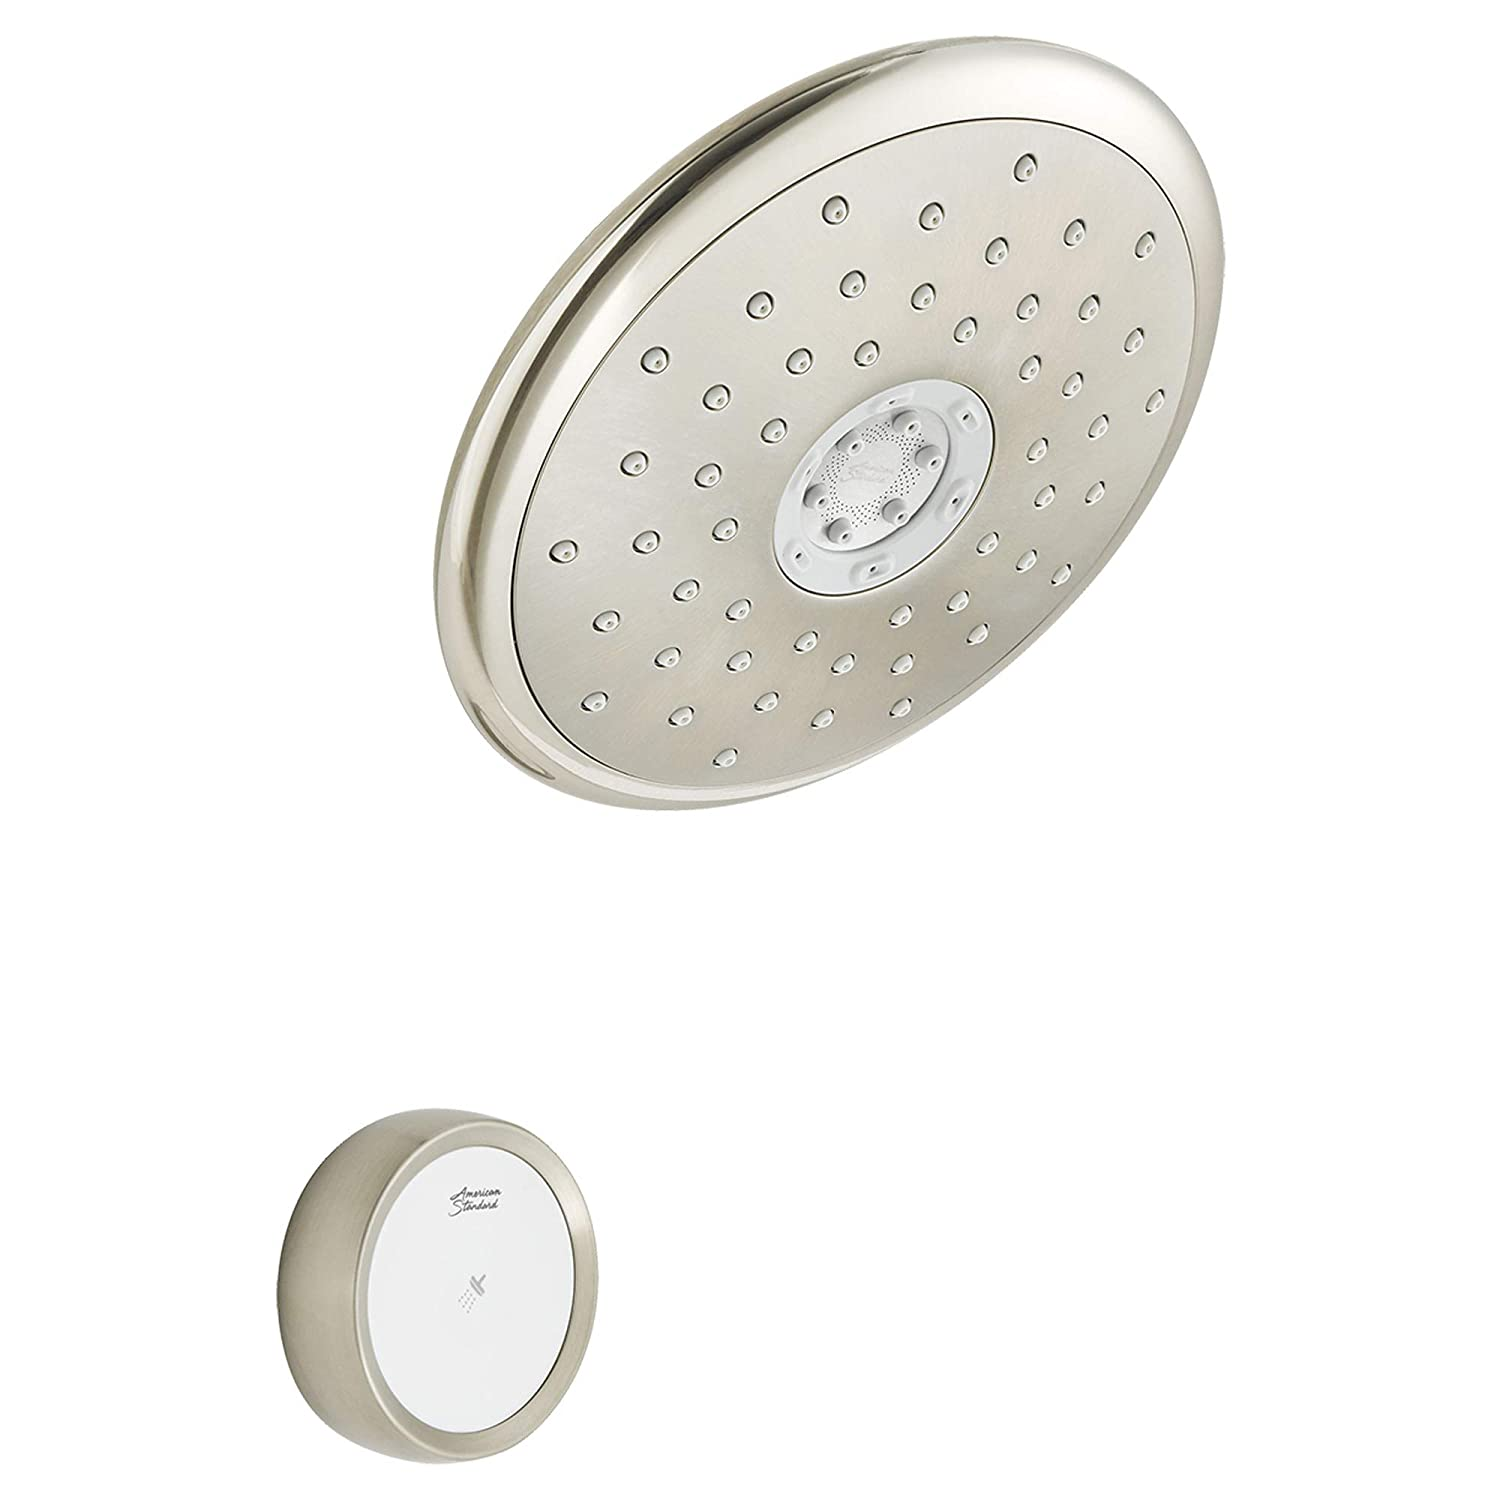 American Standard 9035474.295 Spectra eTouch 4-Function Shower Head, 2.5 GPM, Brushed Nickel